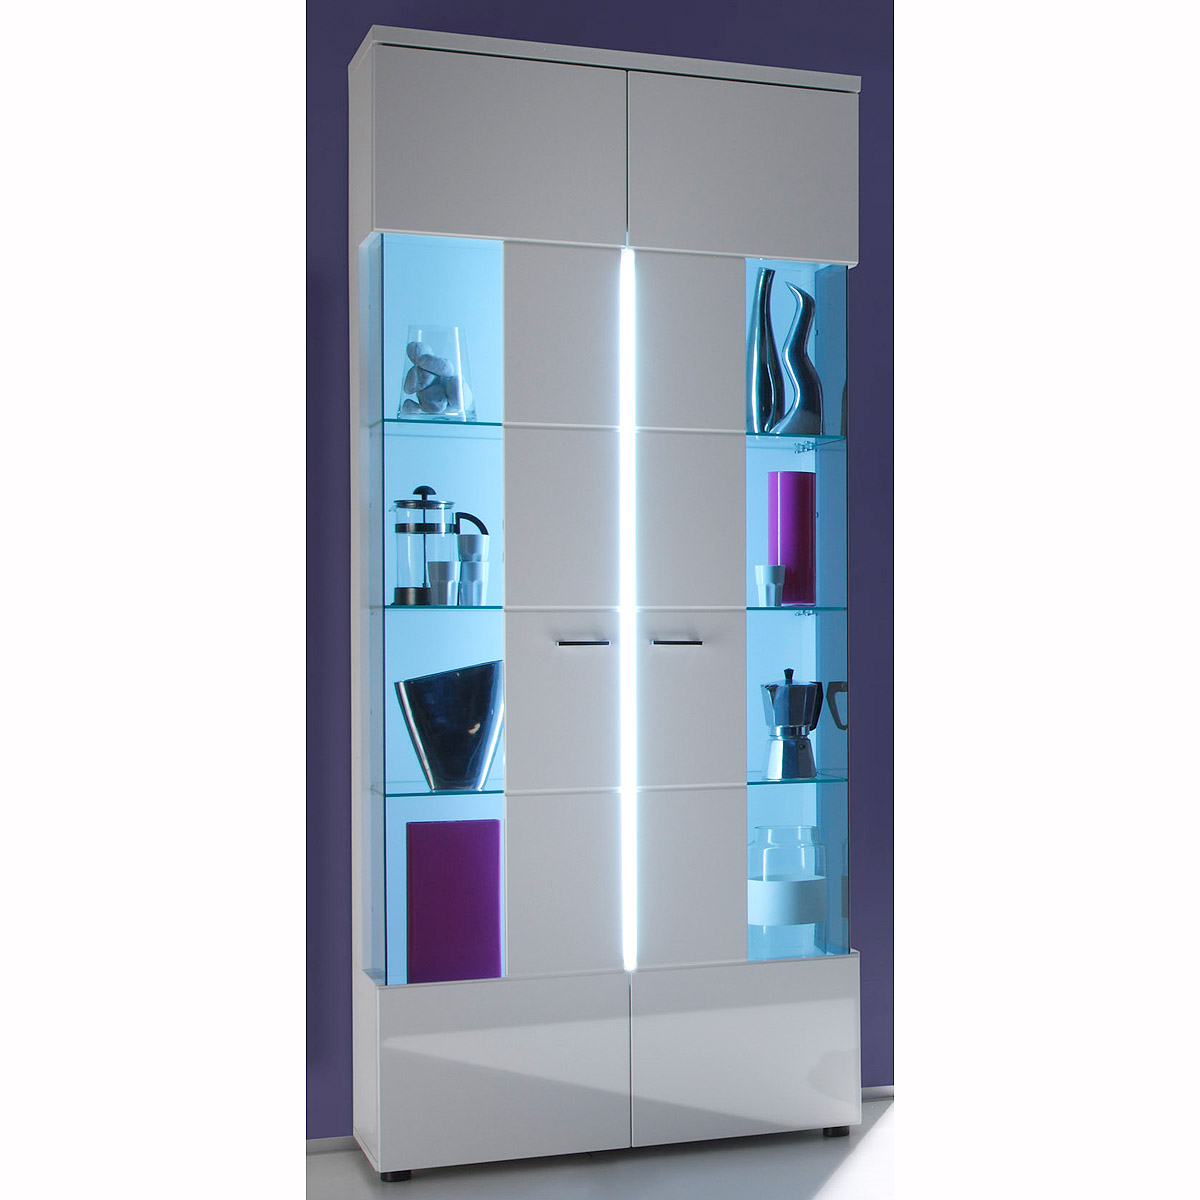 vitrine nightlife glasvitrine in wei hochglanz und glas grau inkl beleuchtung ebay. Black Bedroom Furniture Sets. Home Design Ideas